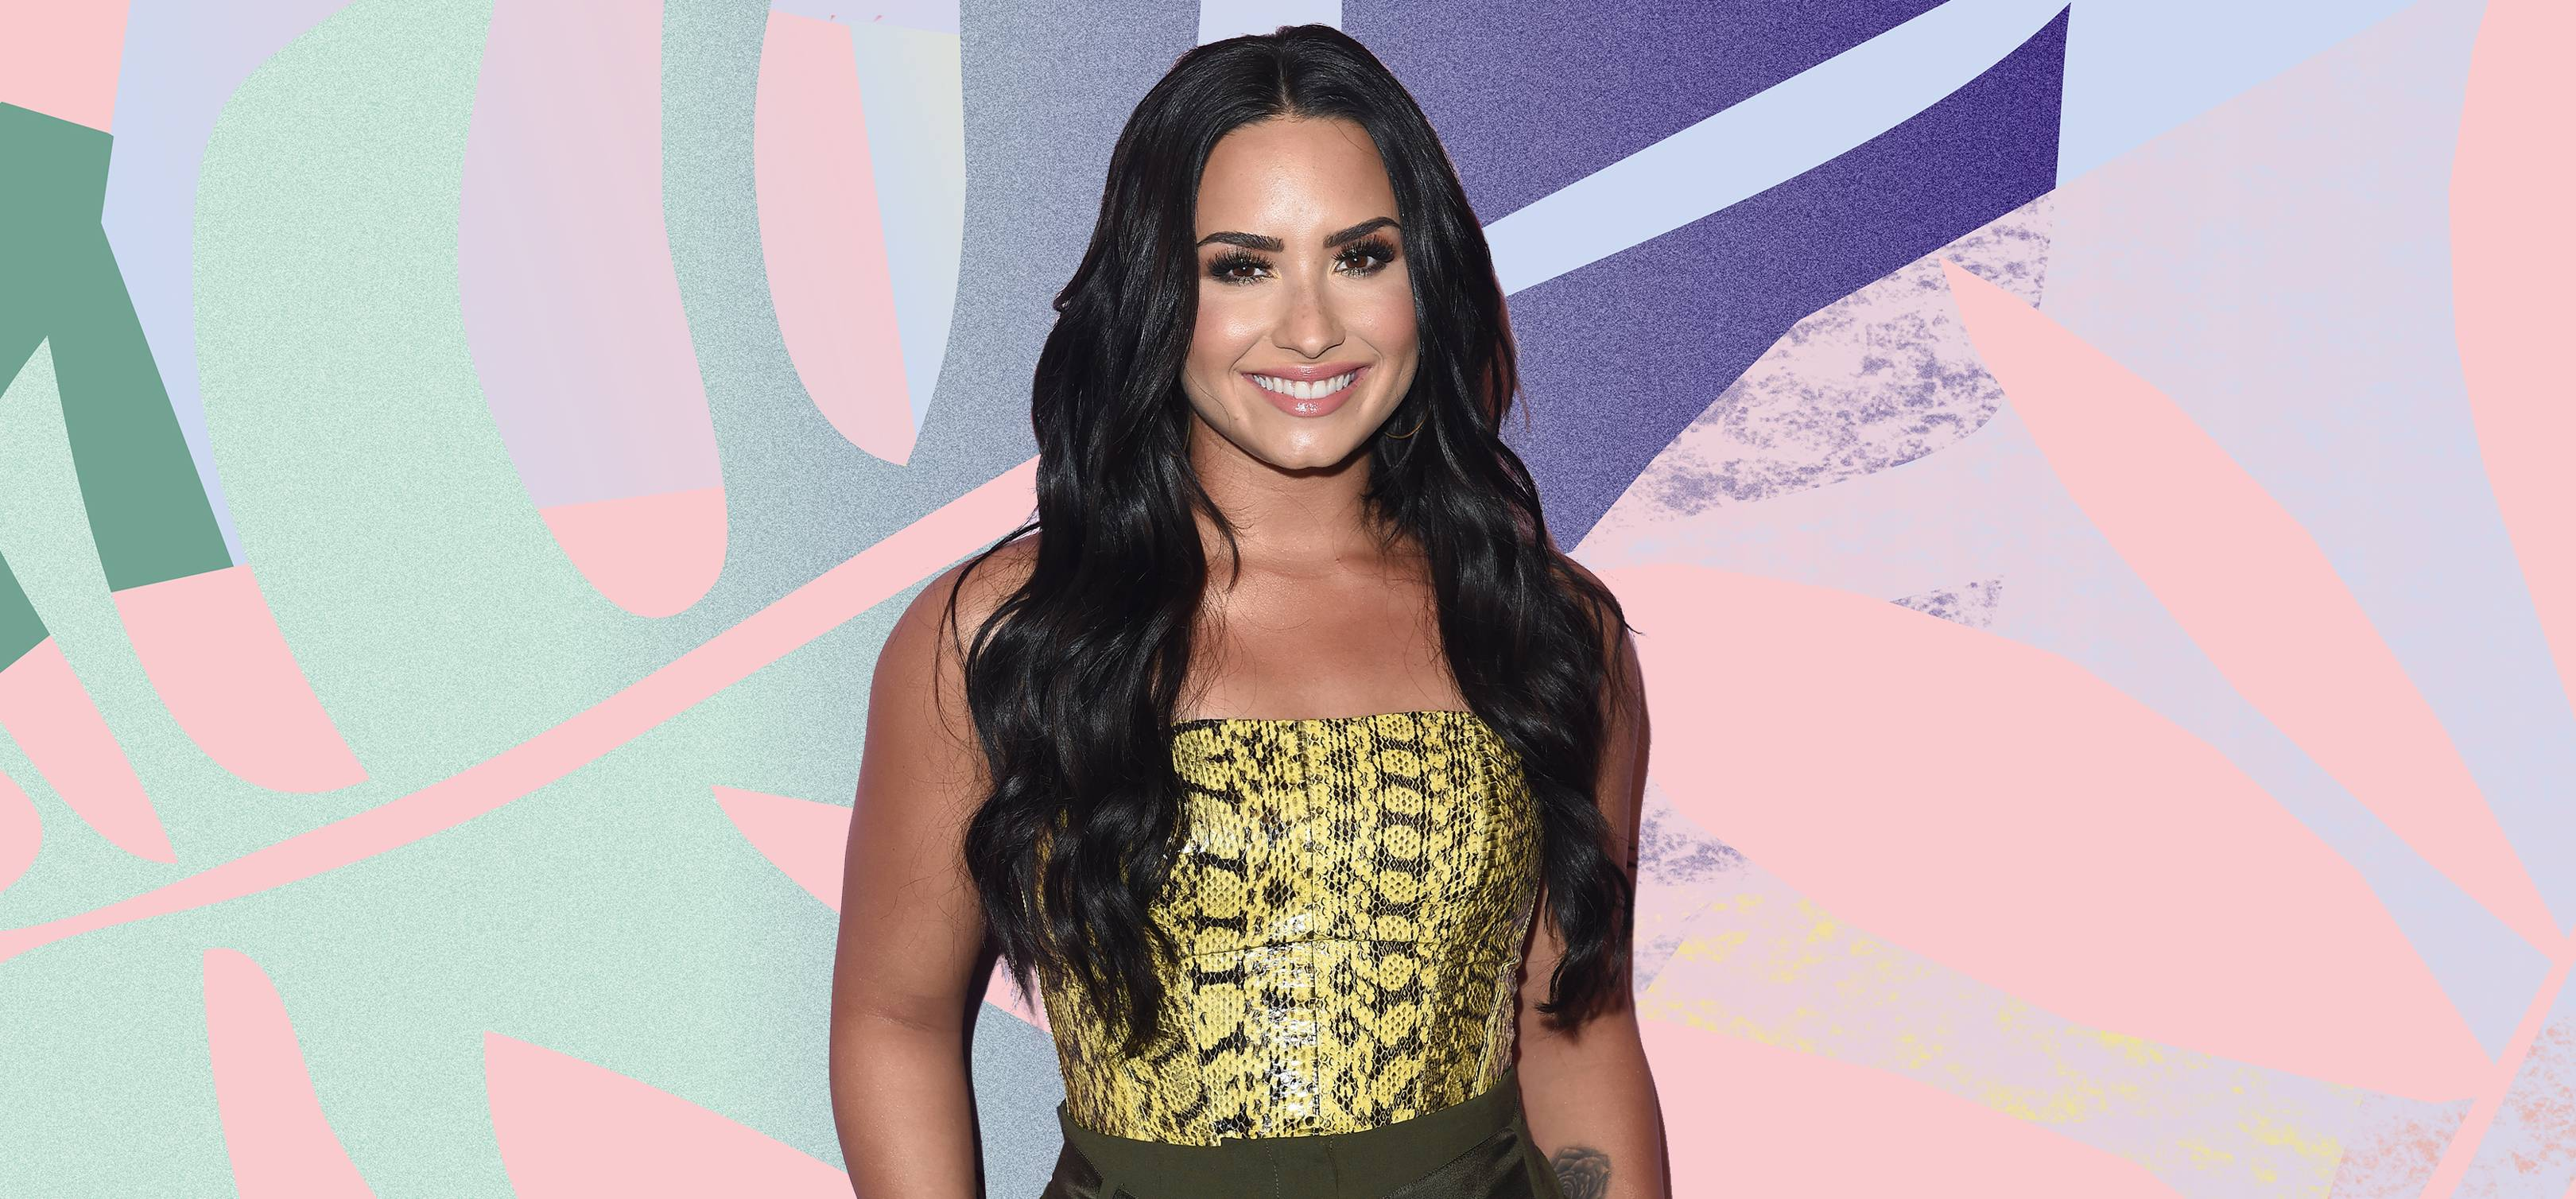 dc7eeca02cd5f Demi Lovato posted this inspiring recovery selfie to celebrate life  post-rehab and she looks so happy and healthy